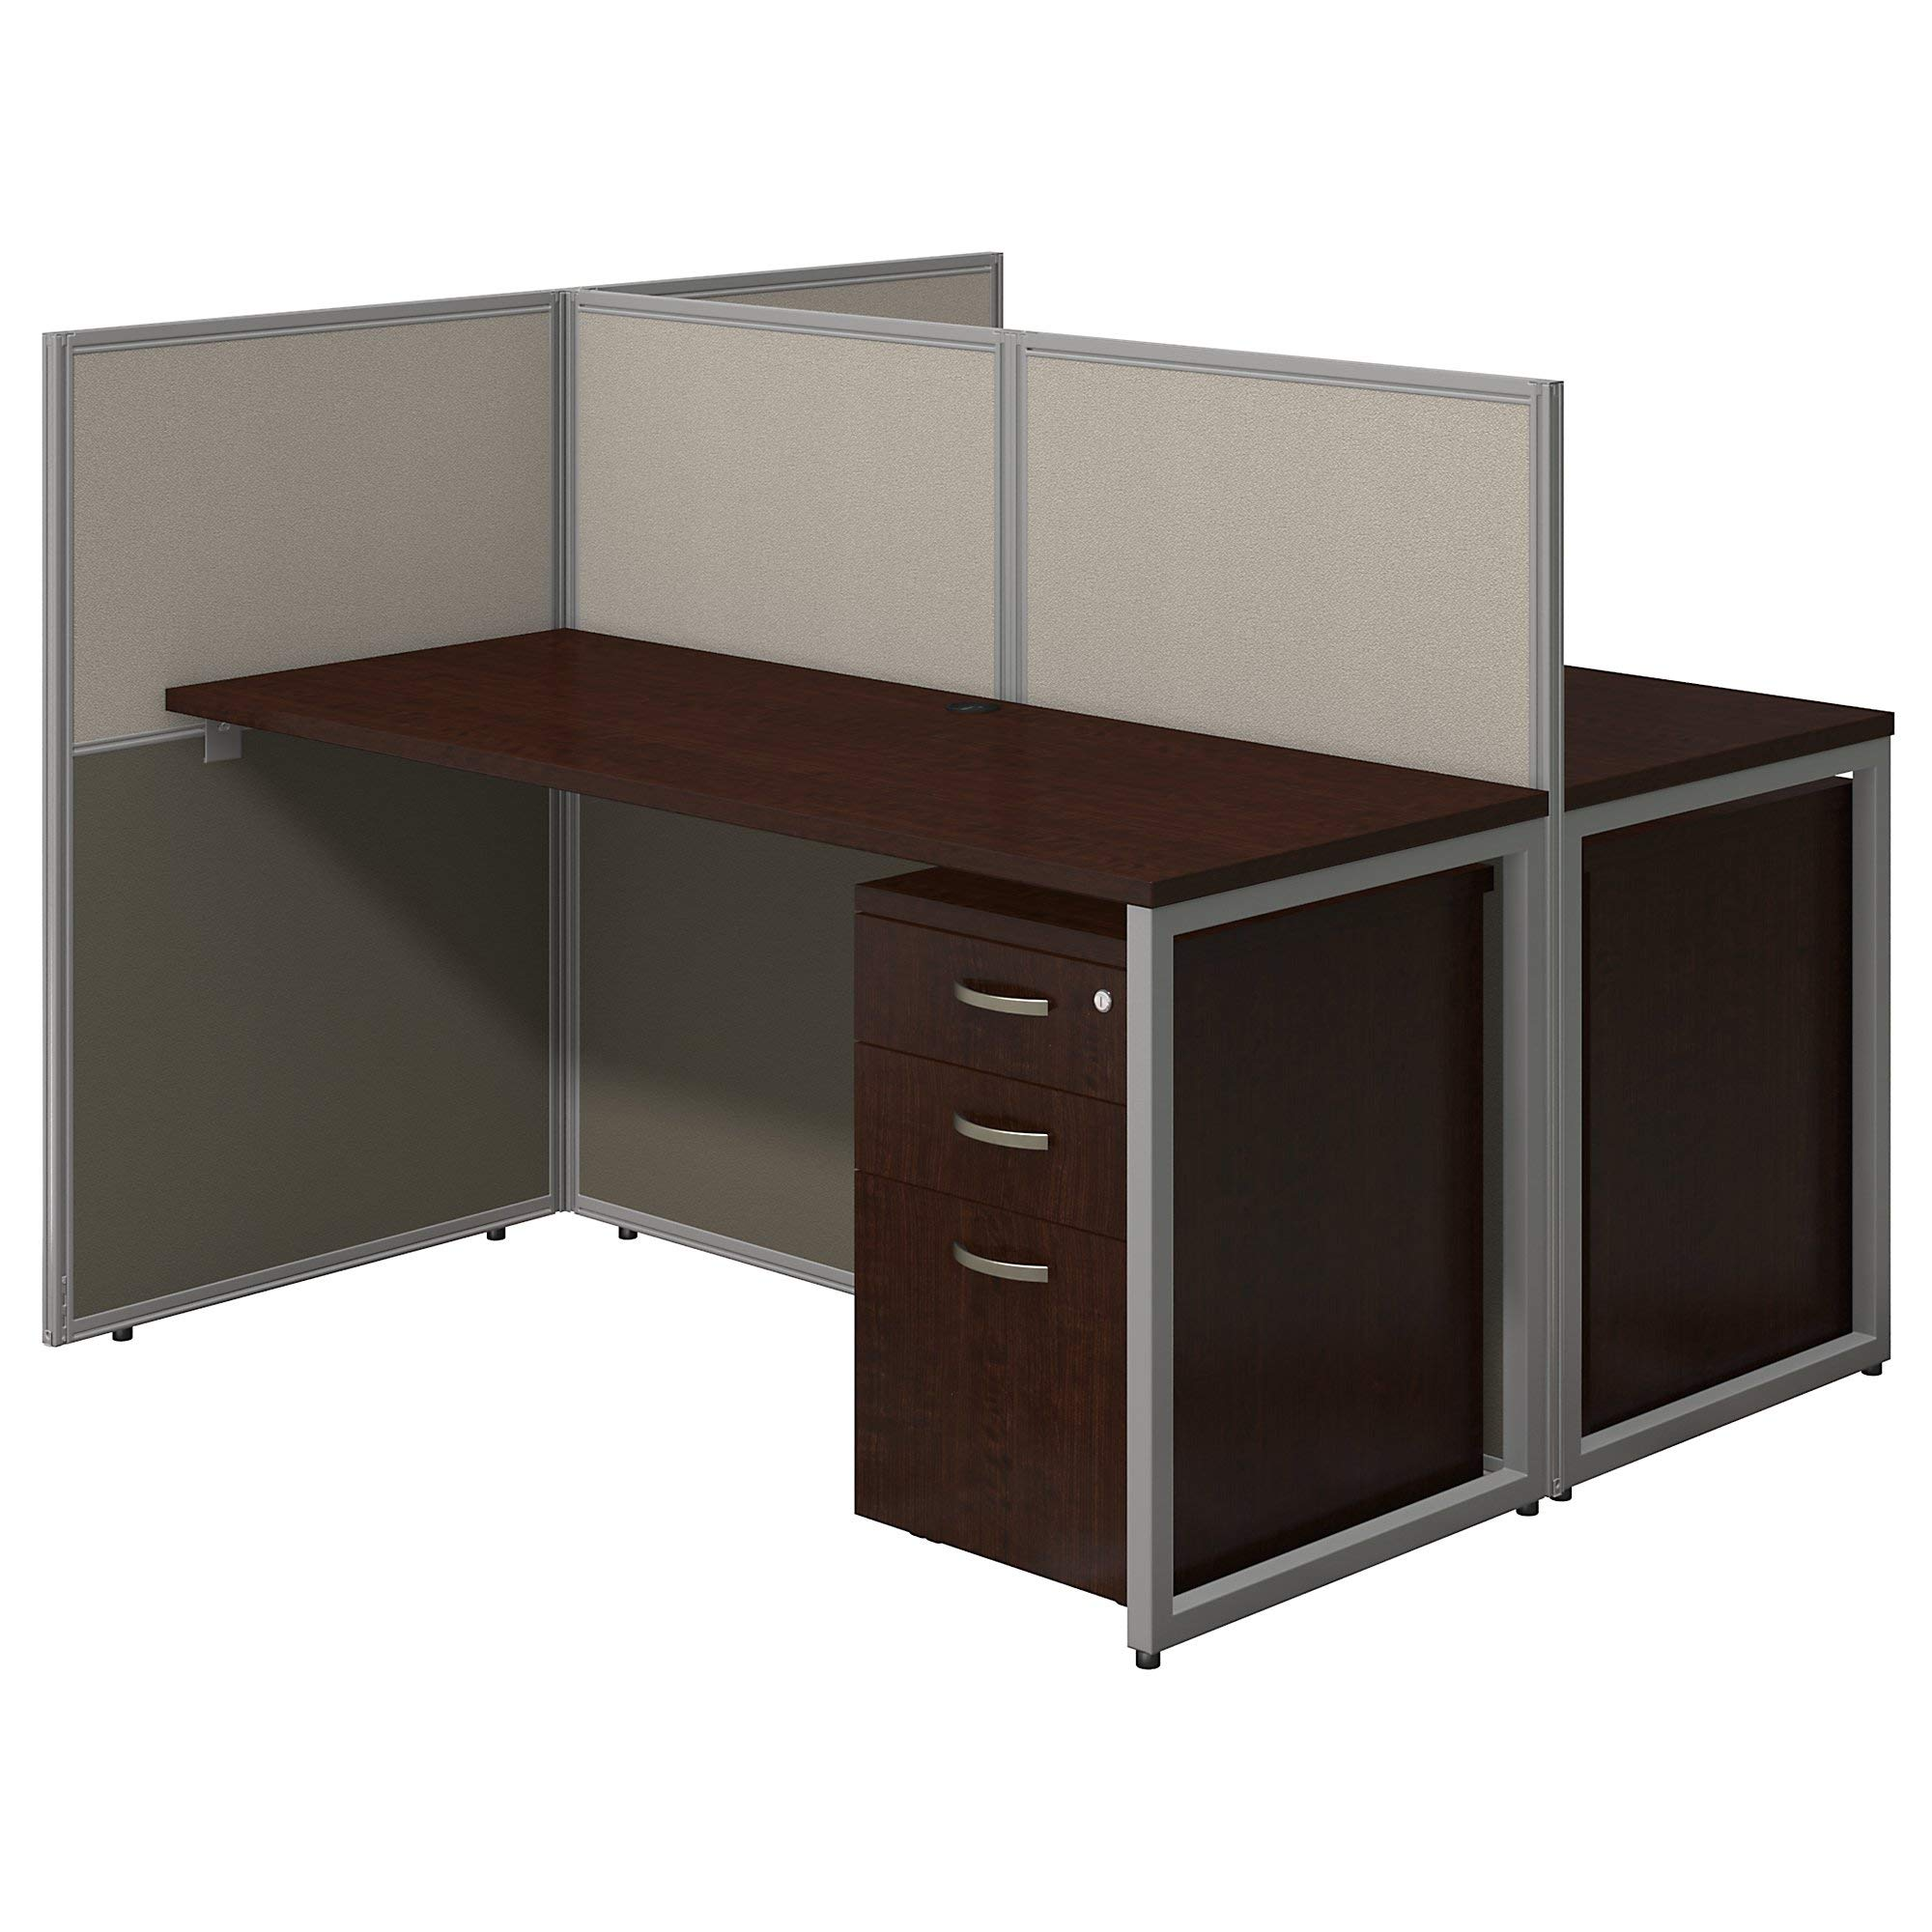 Bush Business Furniture Easy Office 60W Two Person Straight Desk Open Office with Mobile File Cabinets in Mocha Cherry by Bush Business Furniture